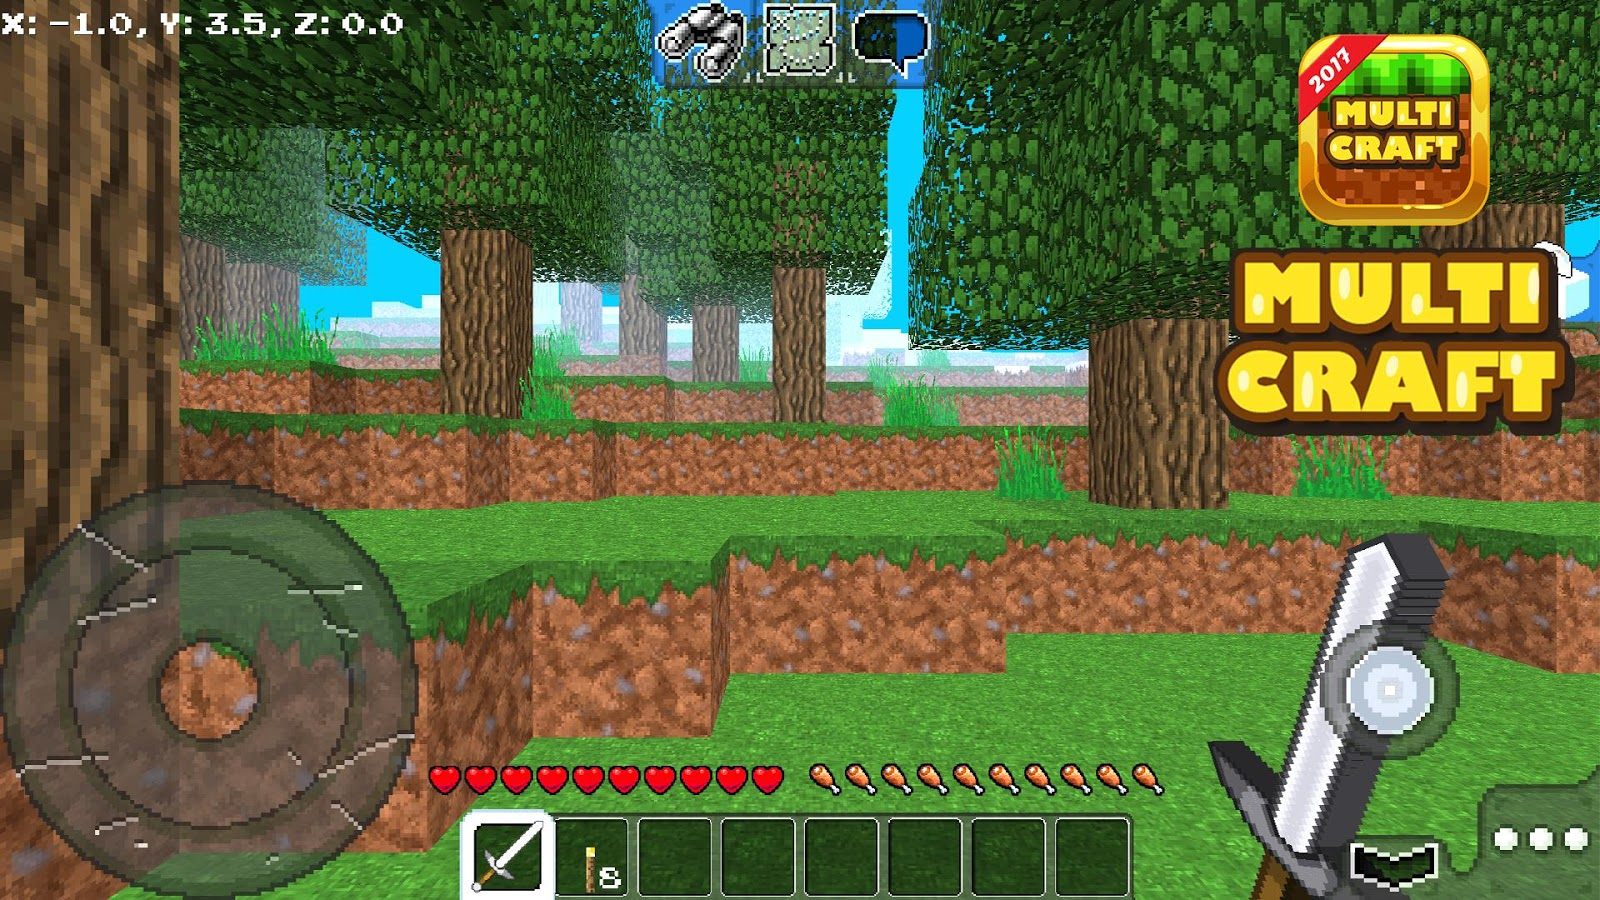 ... Multiplayer for Minecraft PE 10.0.0 screenshot 15 ...